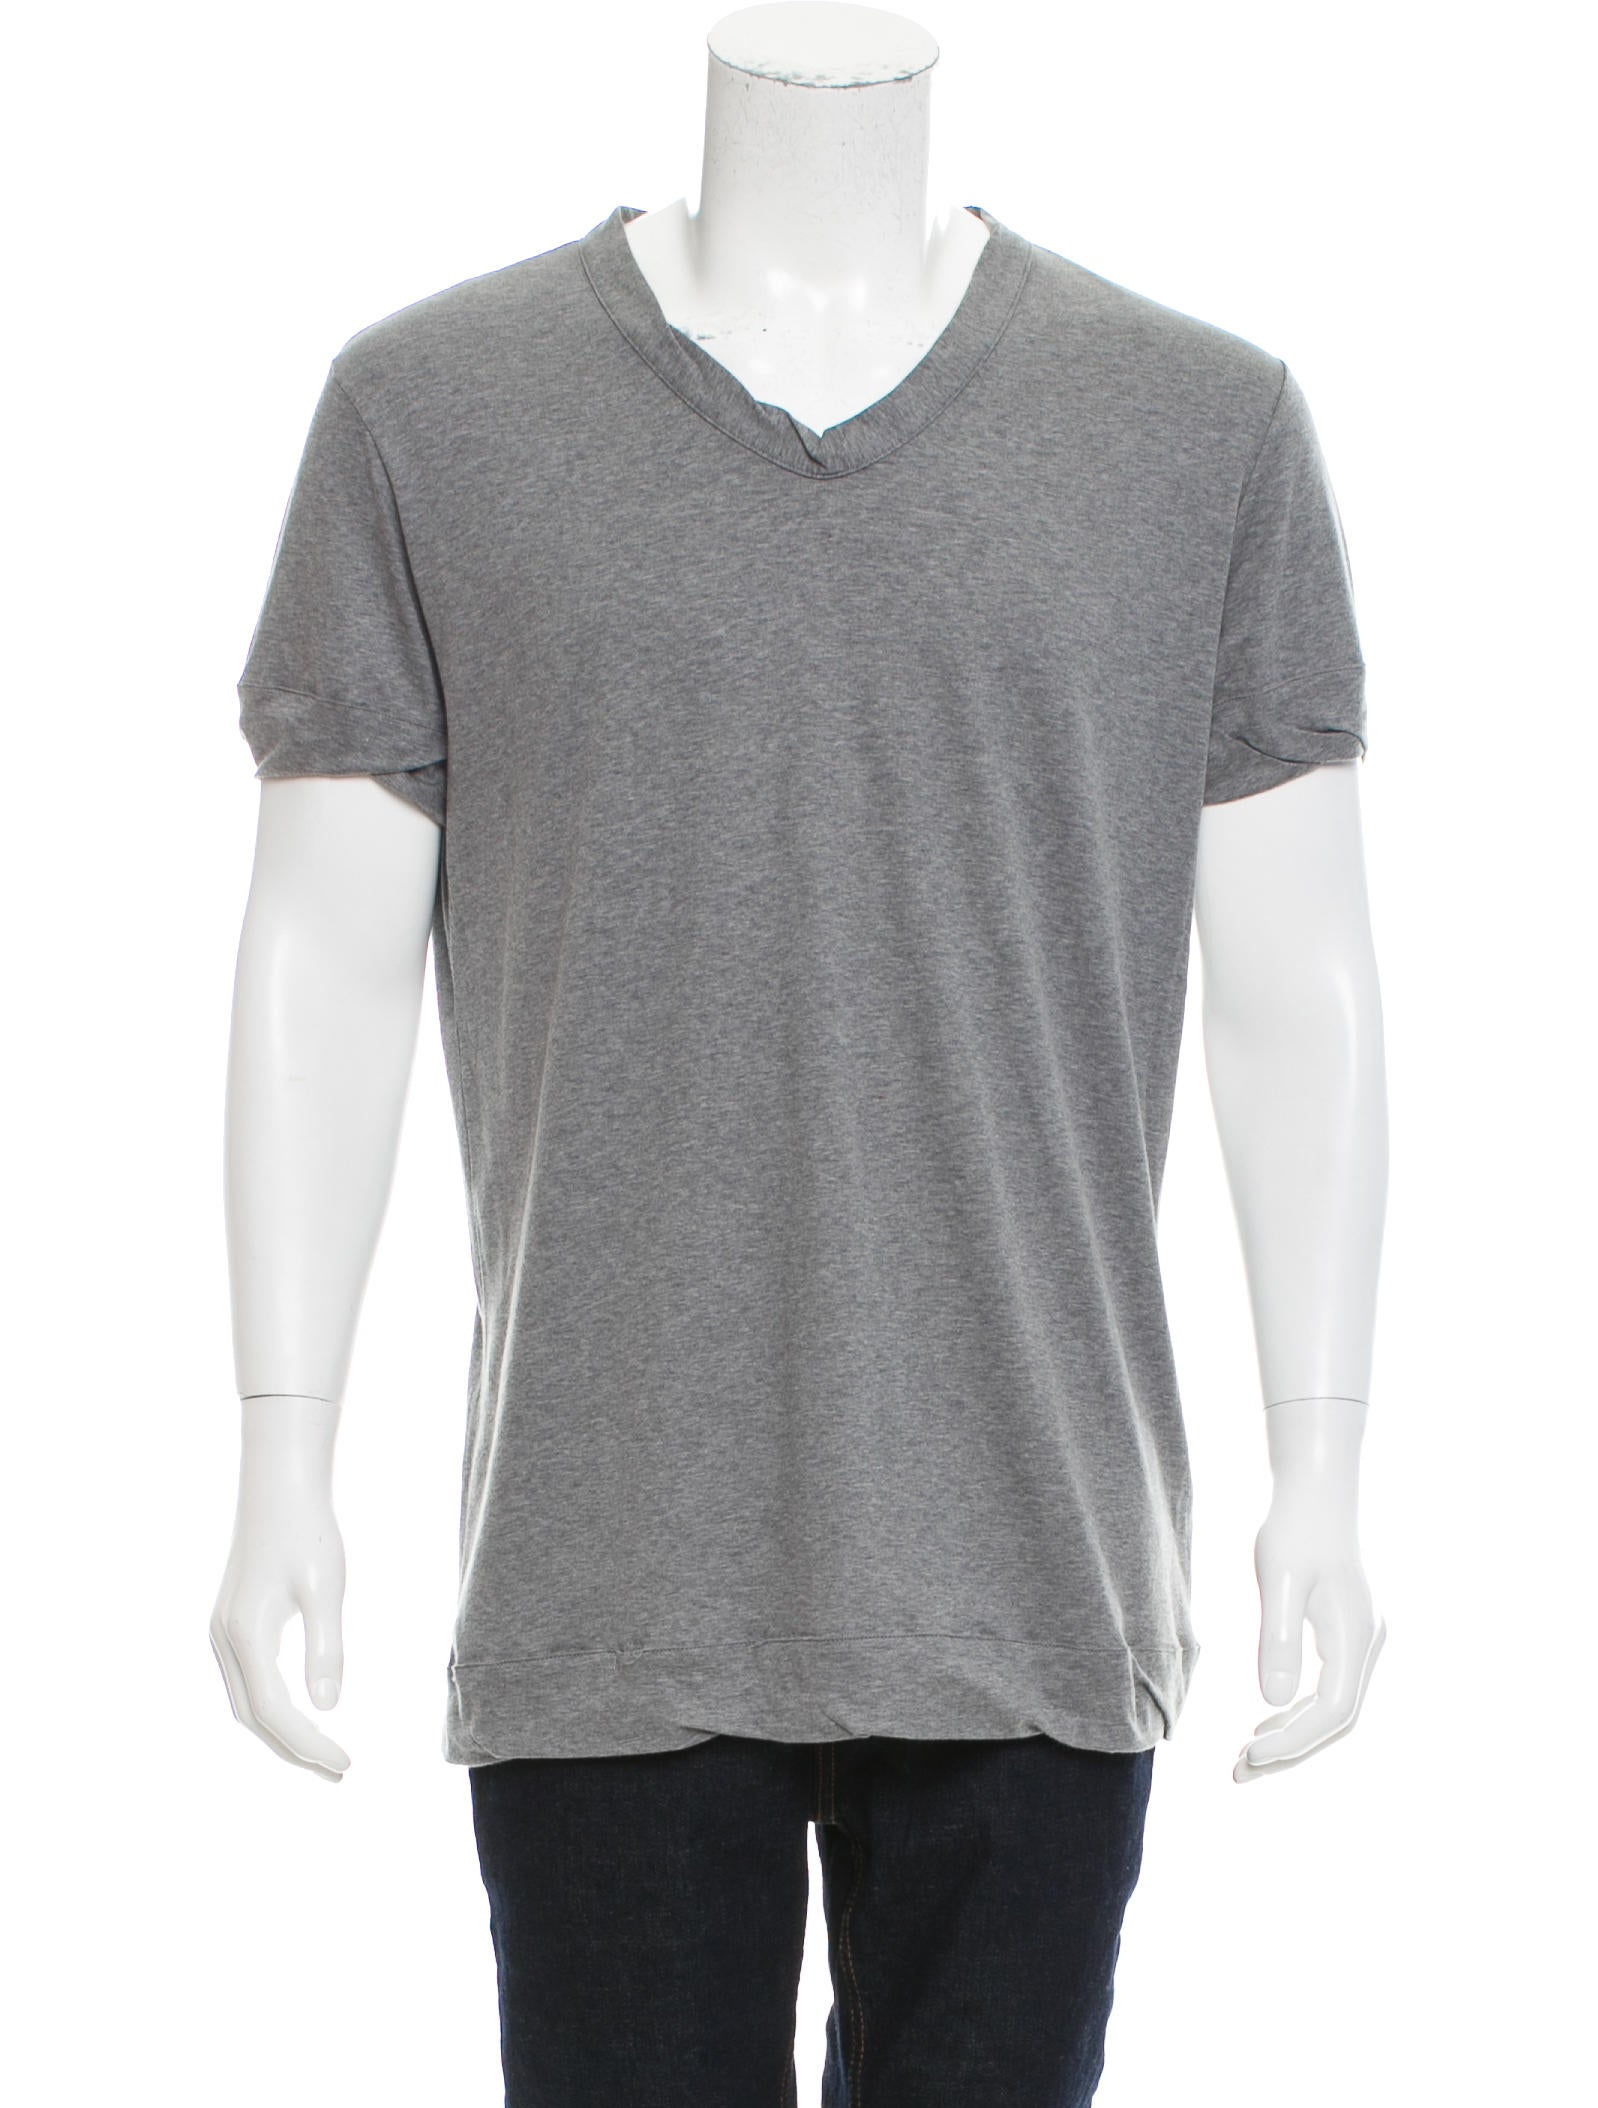 Bottega veneta short sleeve v neck t shirt w tags for Bottega veneta t shirt